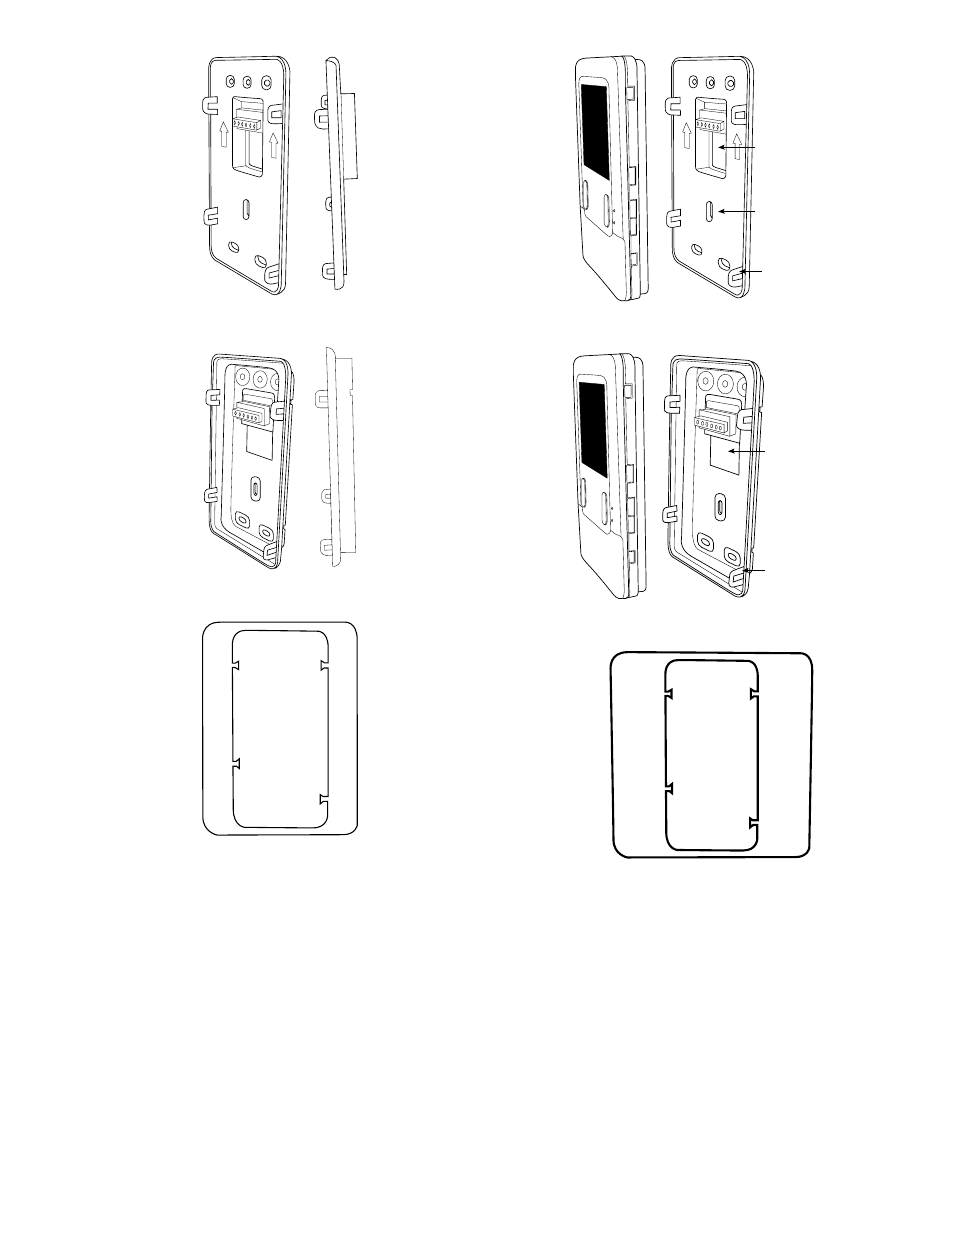 Fig. 3—recessed mount backplate, Fig. 4—surface mount